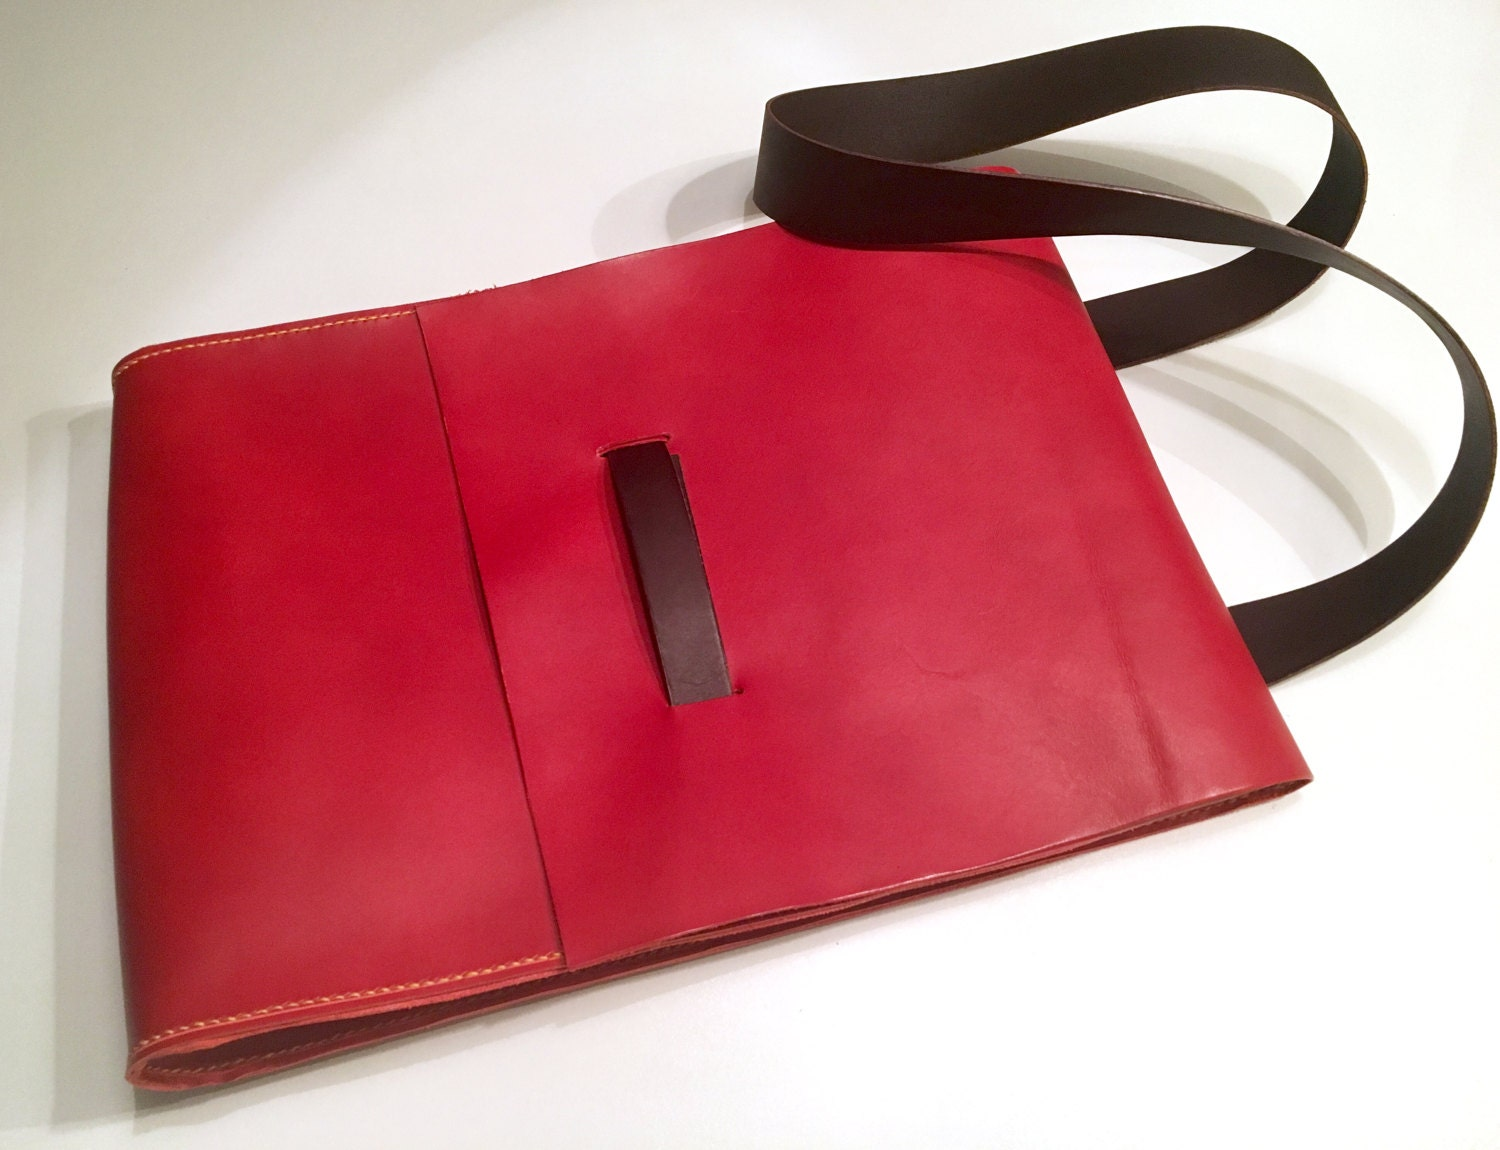 Handmade fully handstitched red vegetable tanned leather laptop crossbody messenger bag